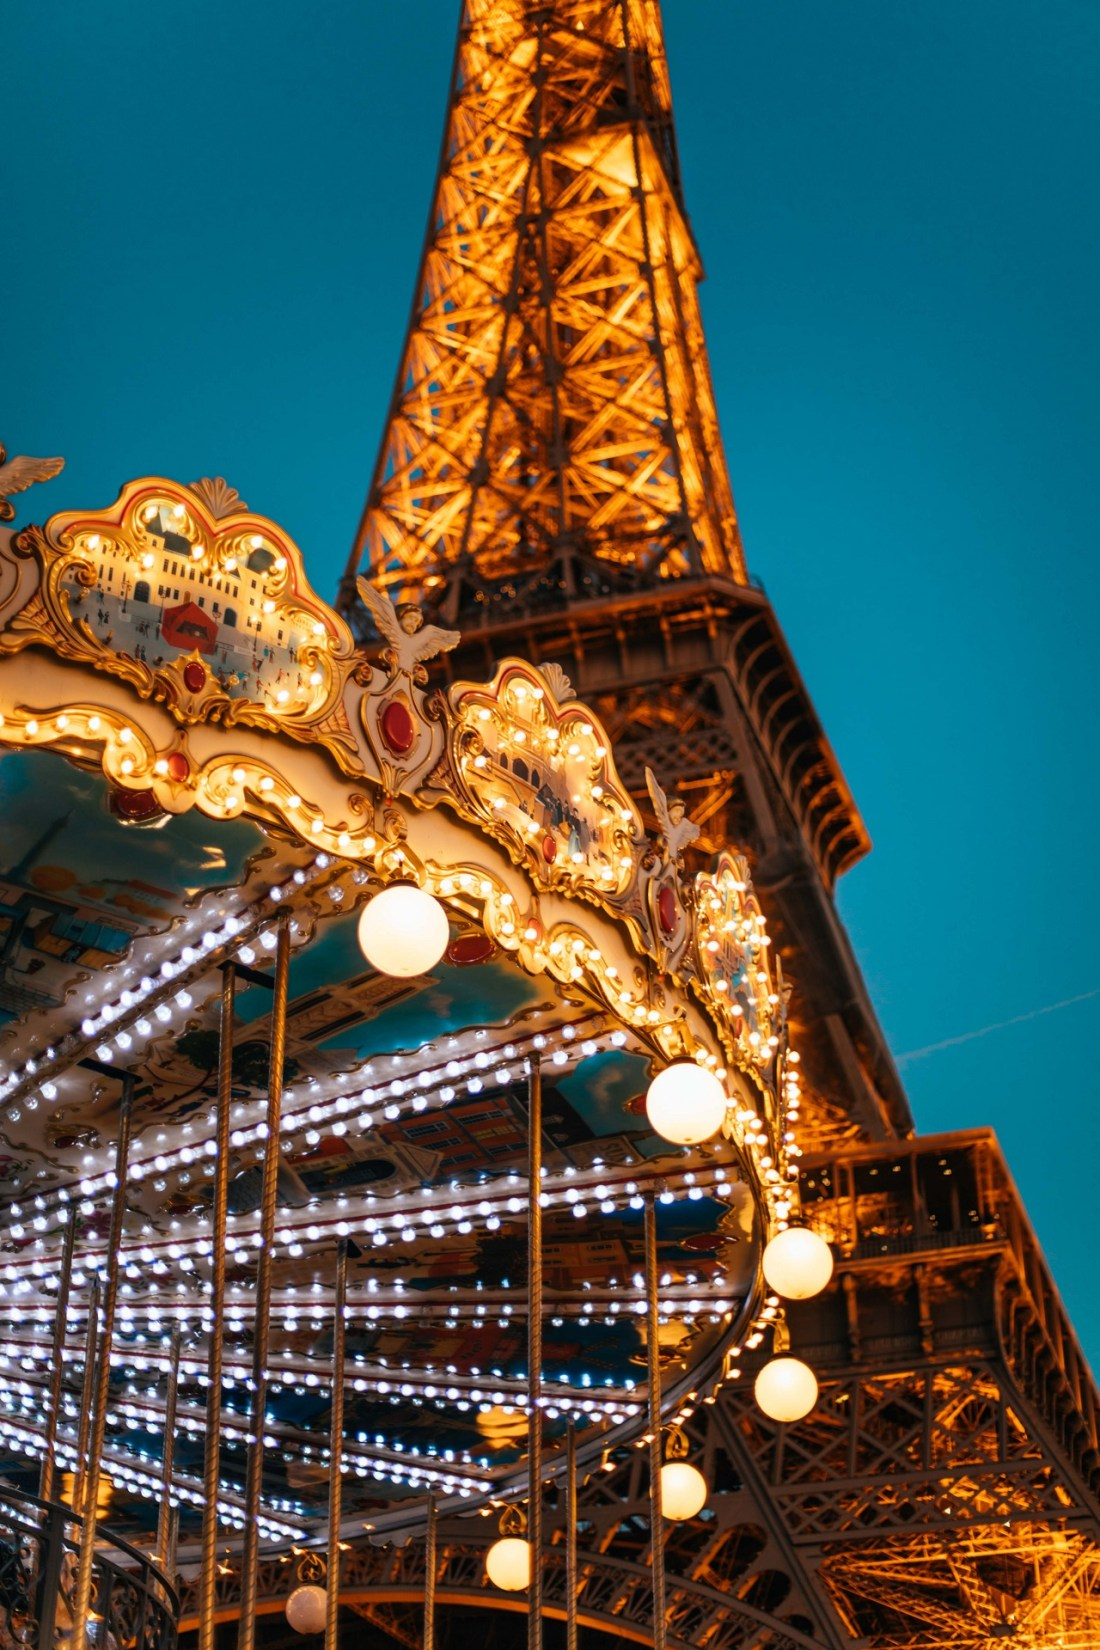 Eiffel Tower and Carousel Paris at night